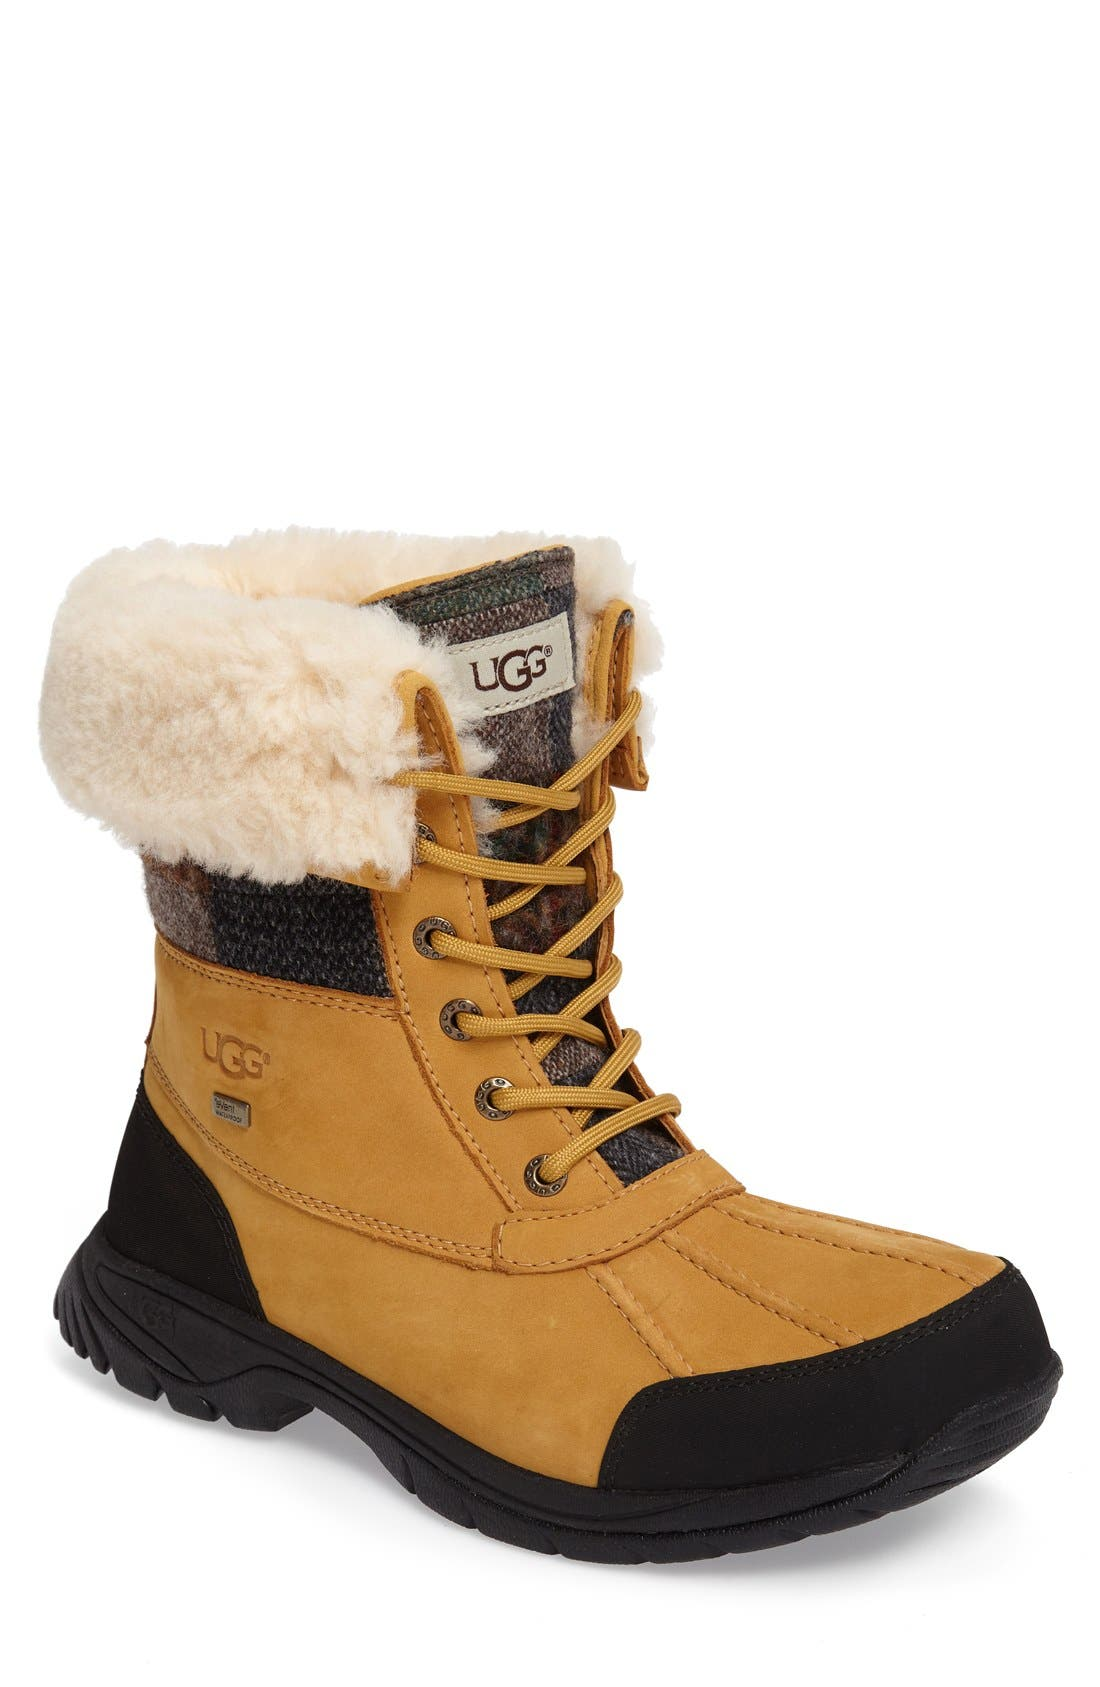 UGG BUTTE PLAID WATERPROOF BOOT